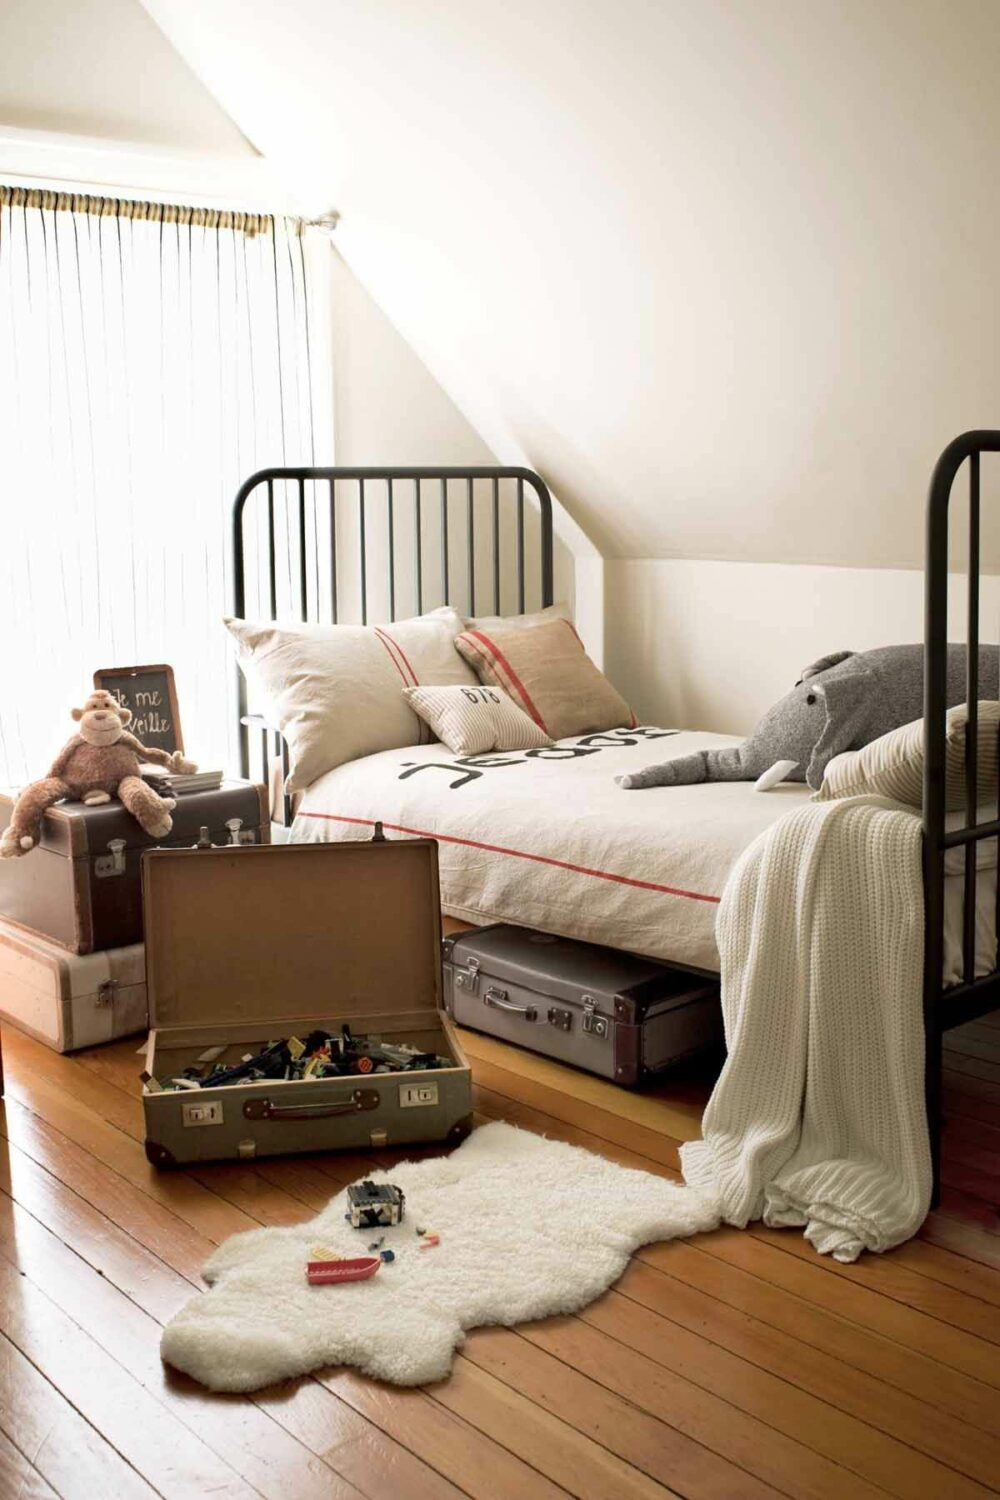 childrens bedroom decorating ideas